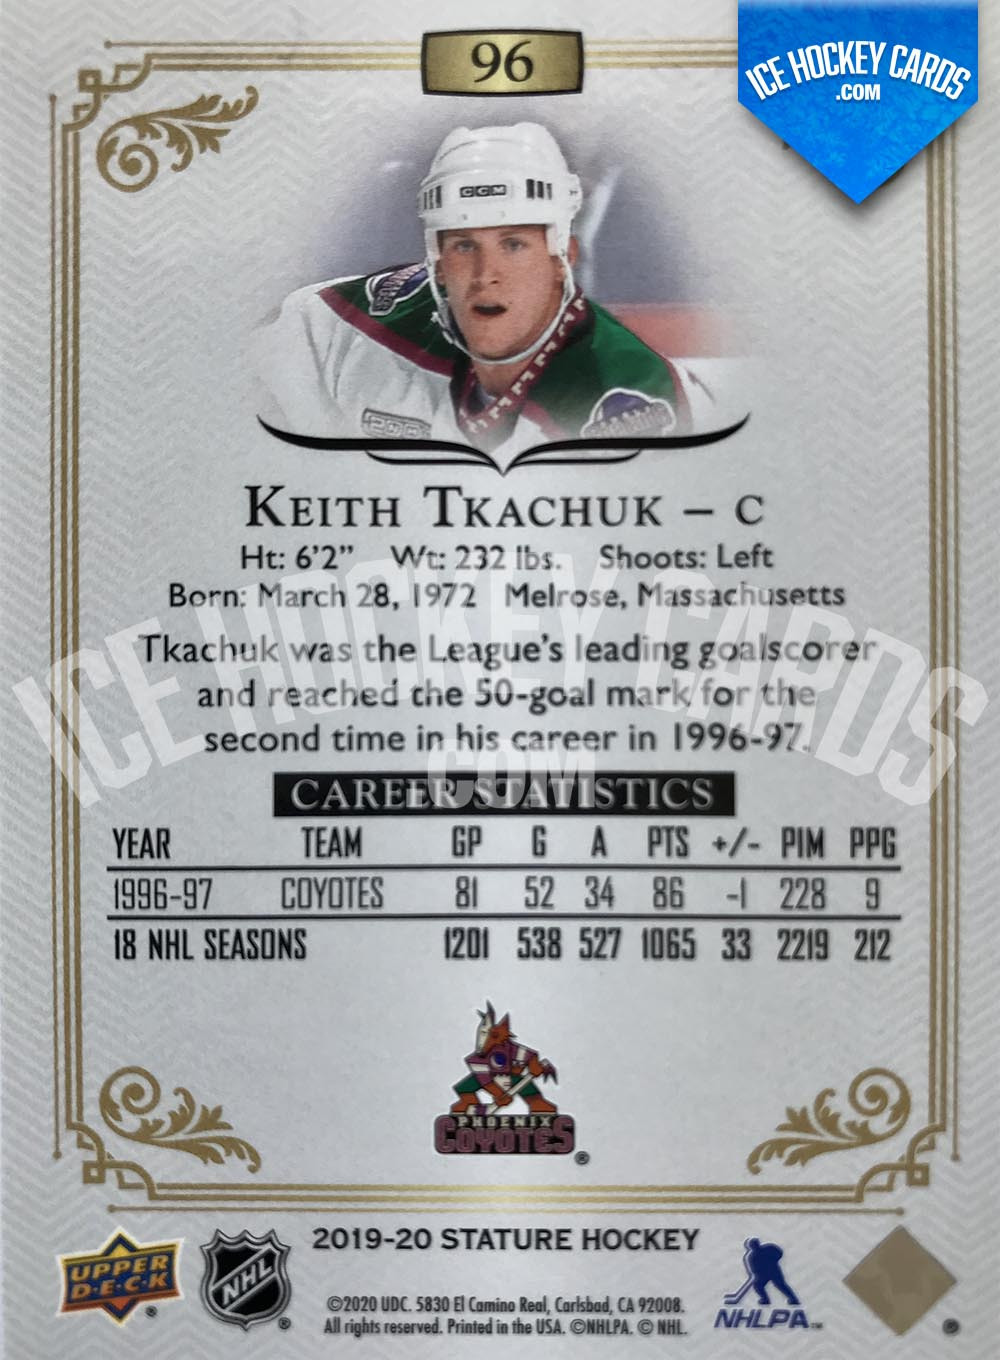 Upper Deck - Stature 2019-20 - Keith Tkachuk Red Base Card # to 75 back